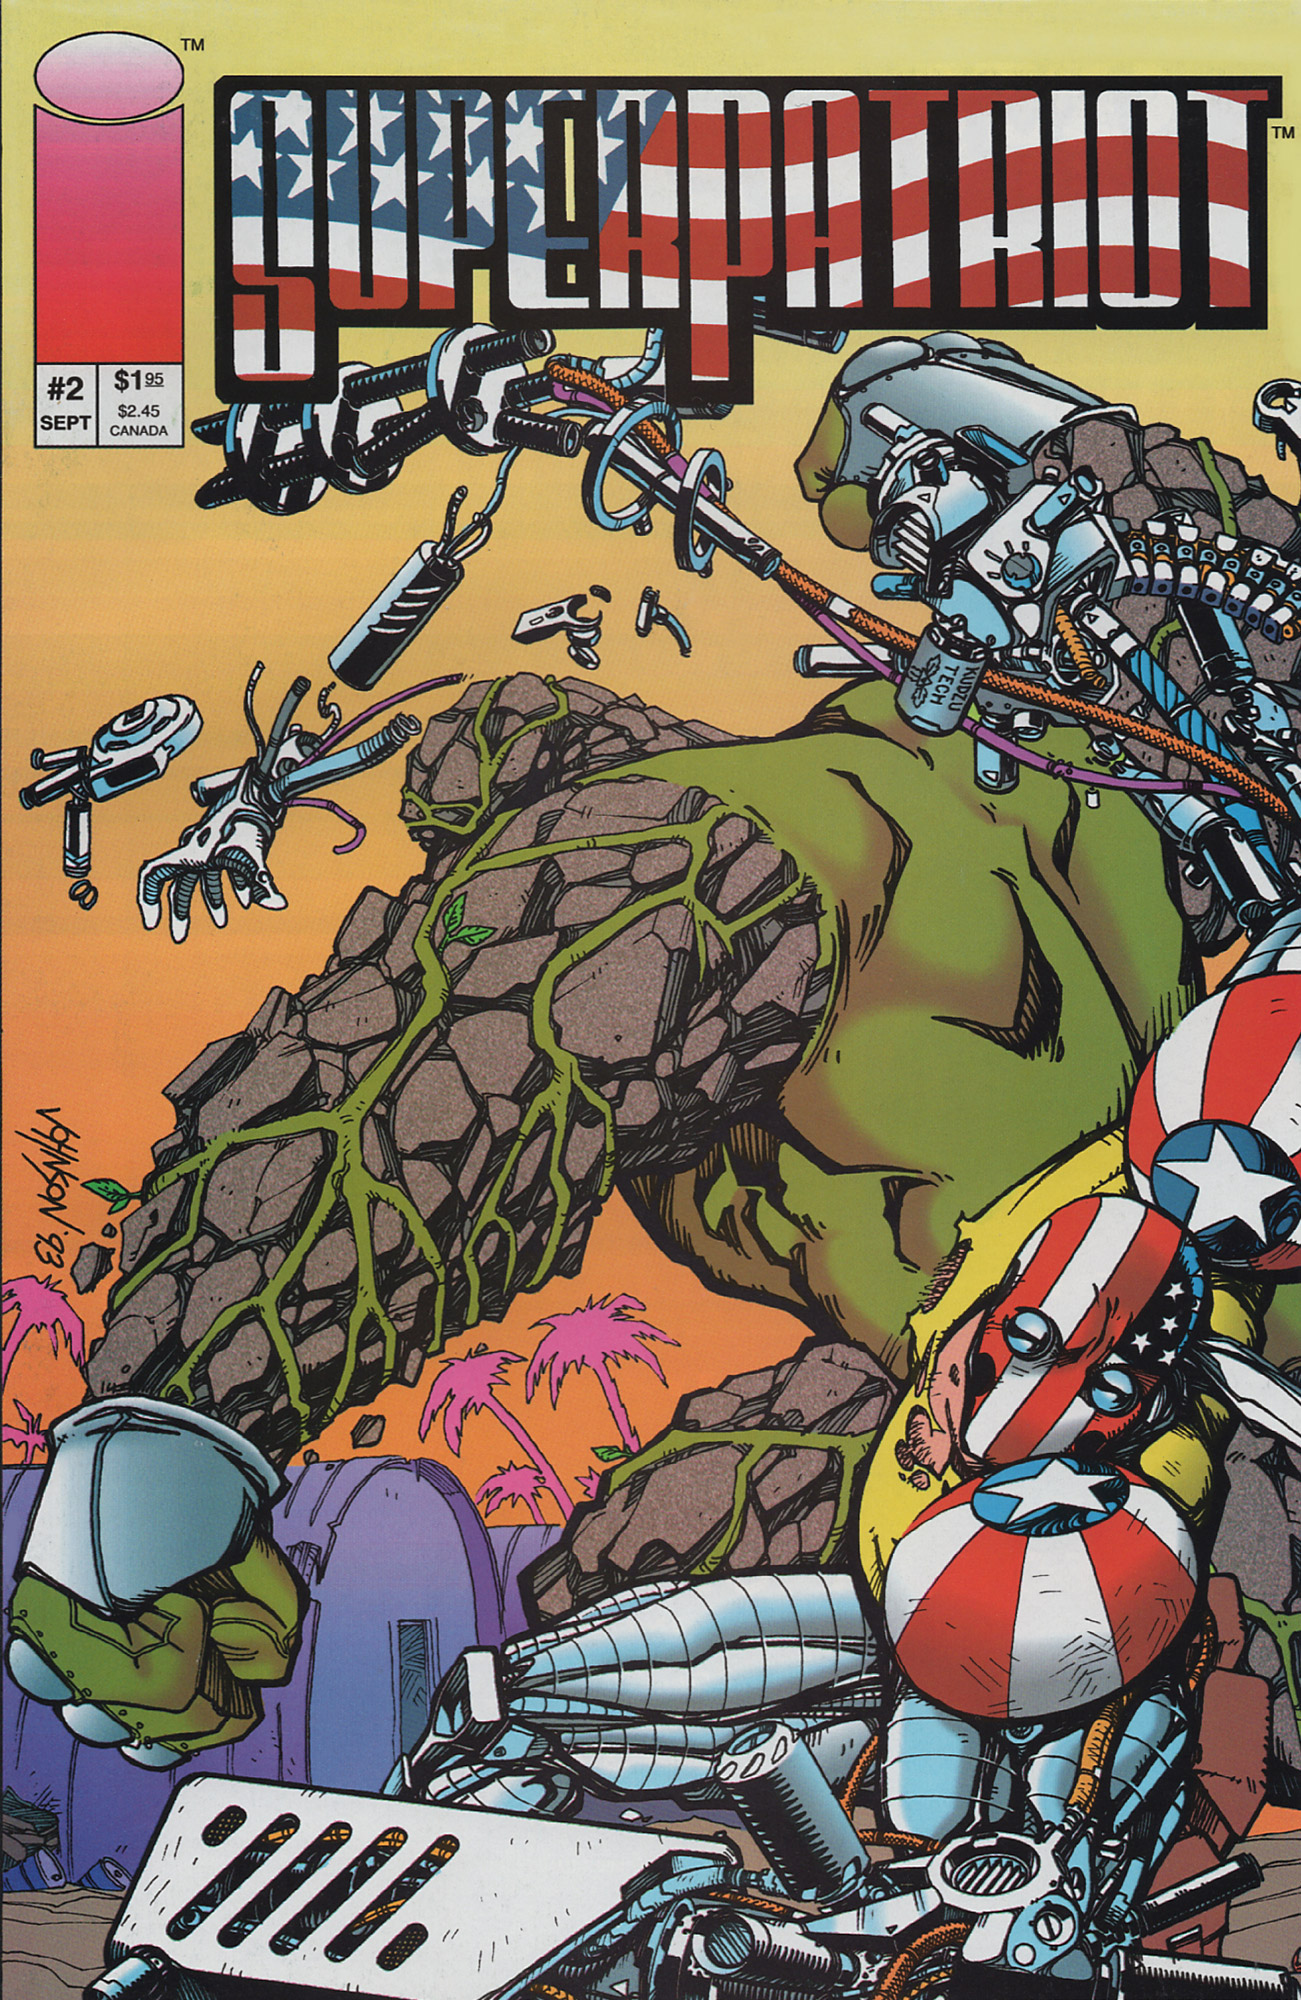 Cover SuperPatriot Vol.1 #2